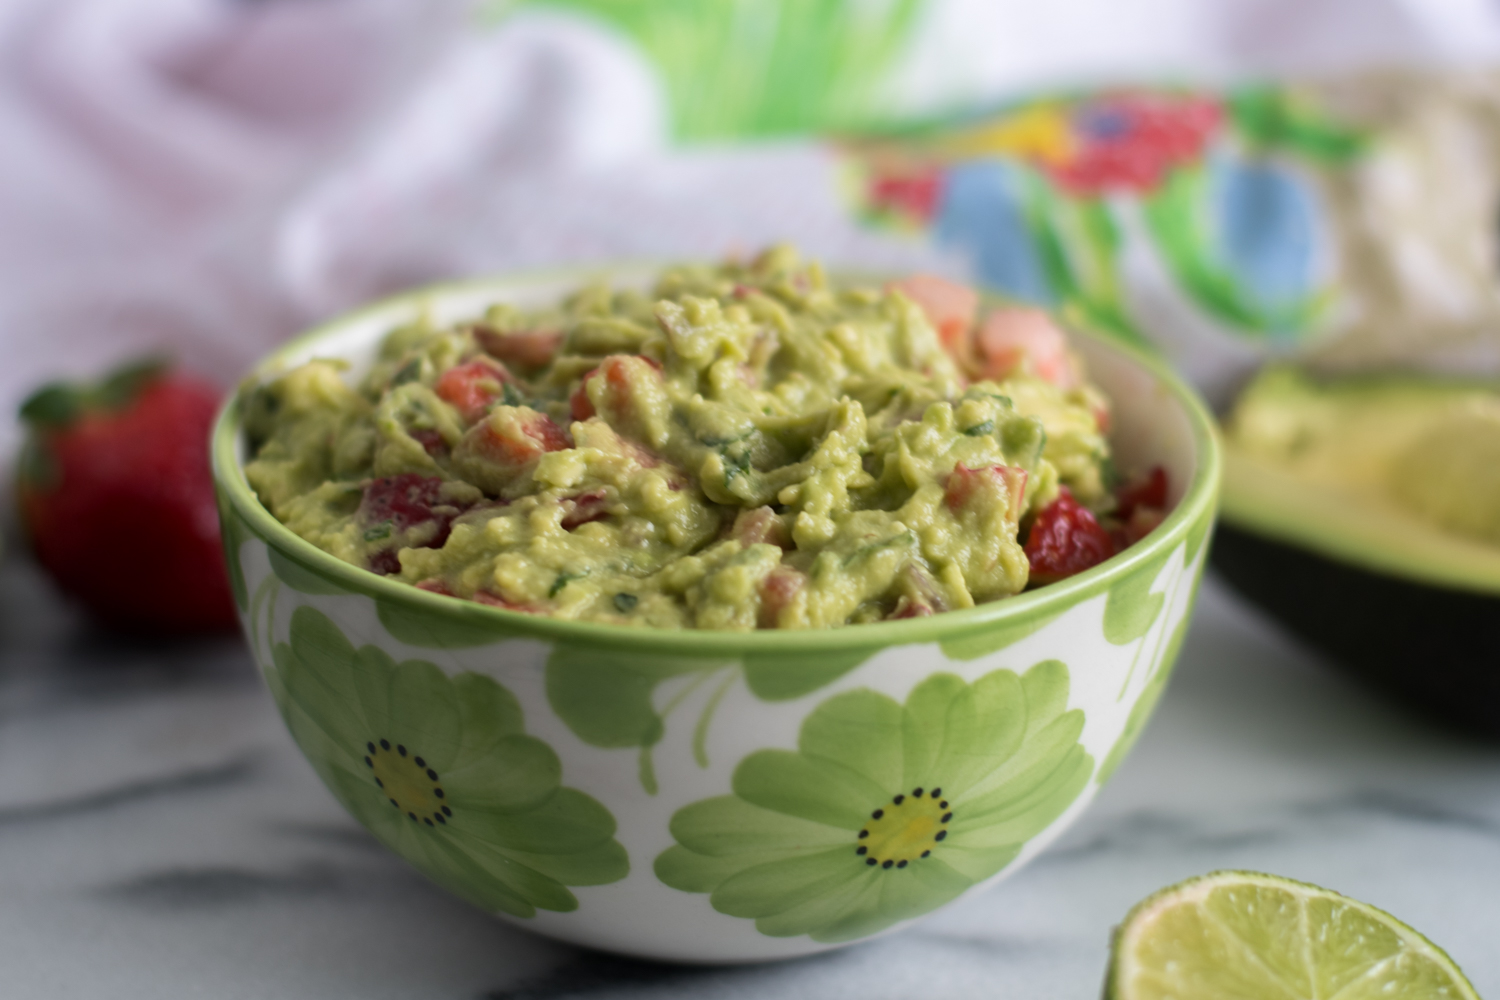 Strawberry Guacamole is a fun twist of classic guacamole. The sweet strawberries pair so well with the buttery avocado! #mexican #vegan